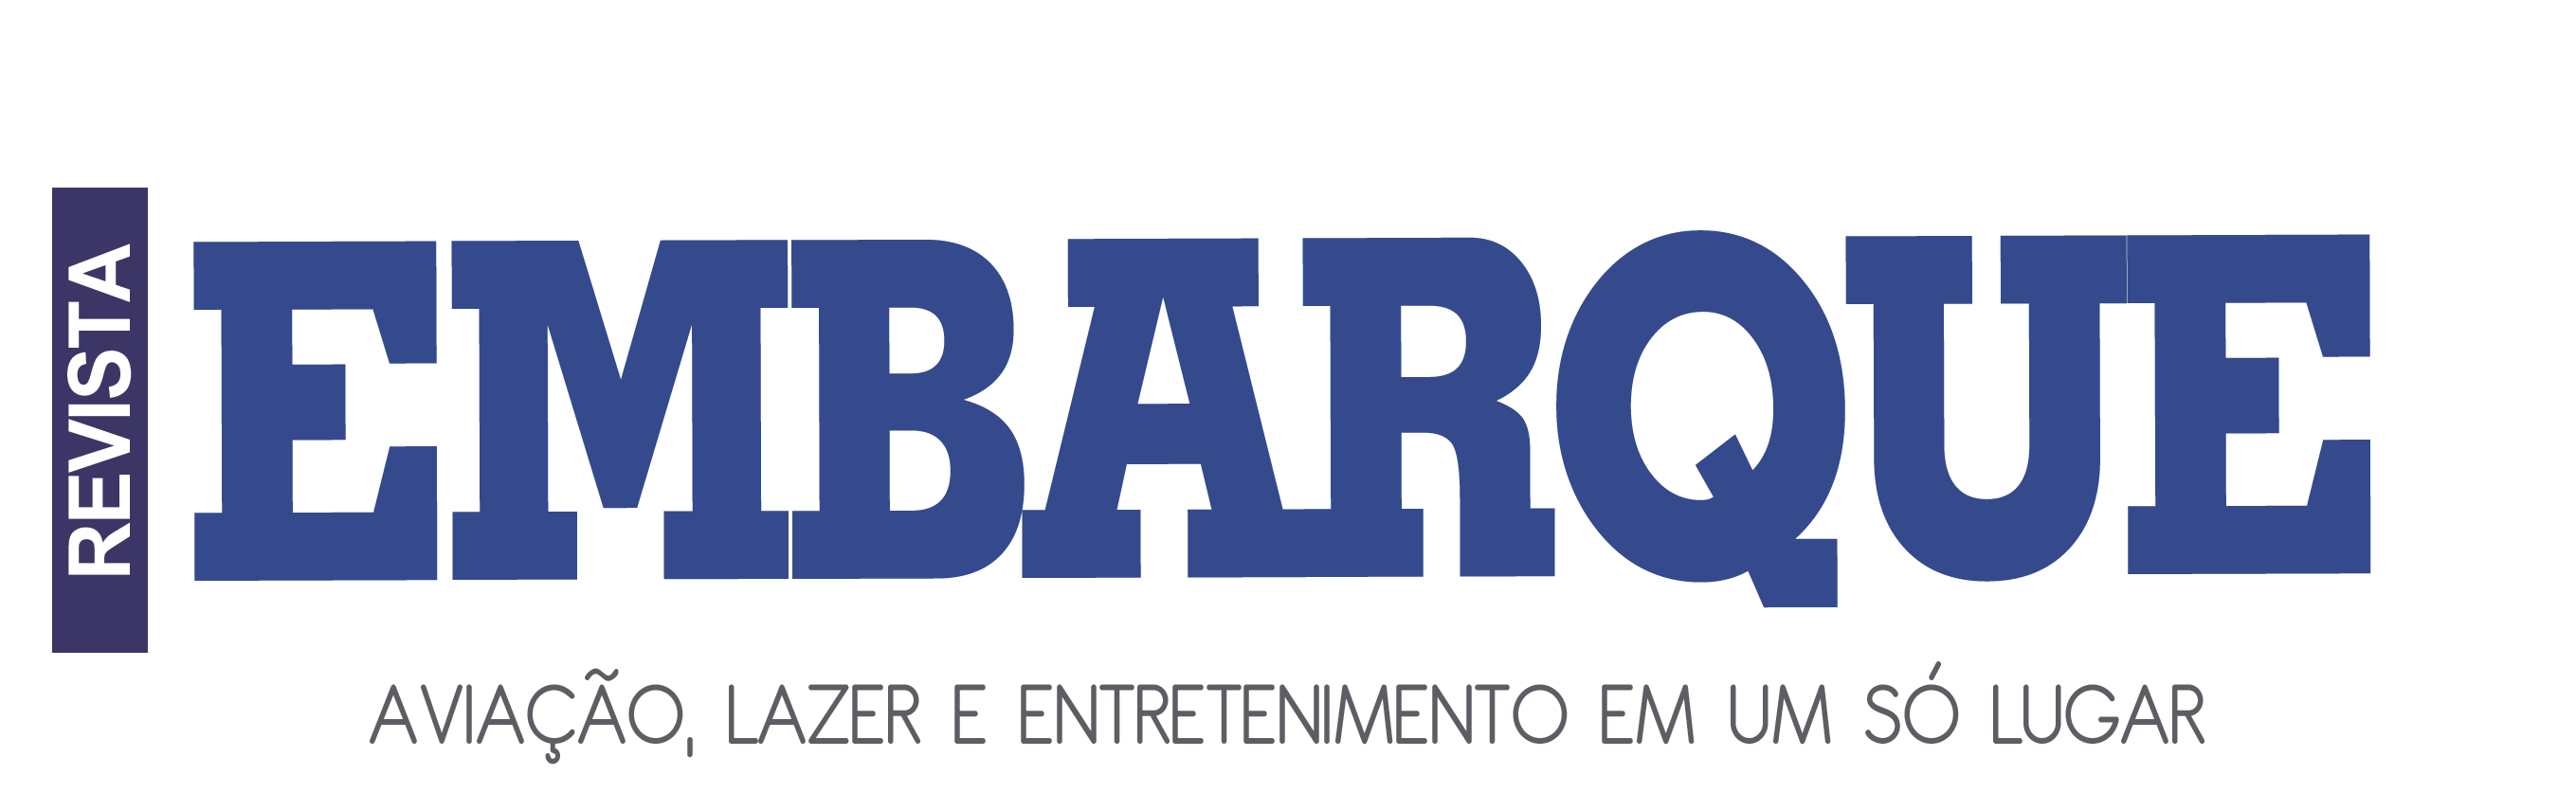 Revista Embarque